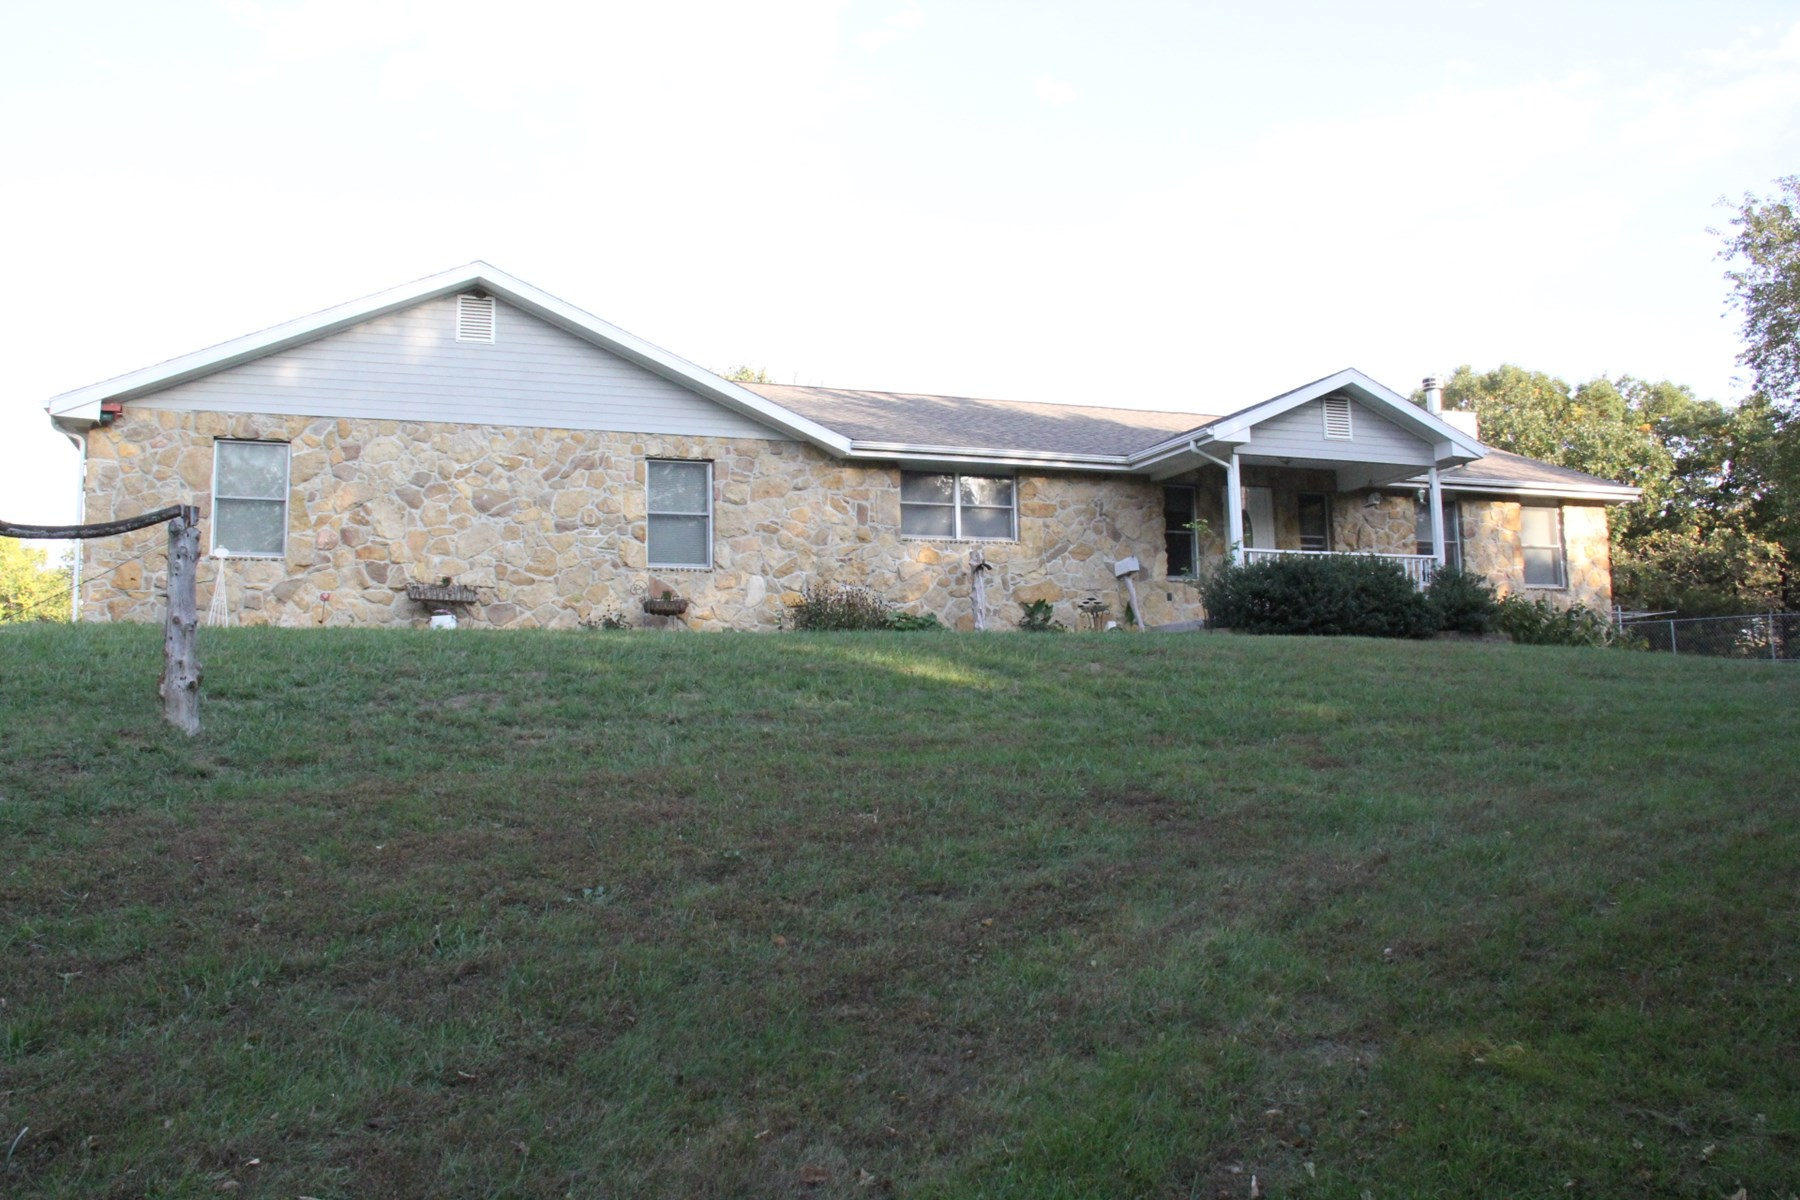 Home For Sale in Jackson County Kansas